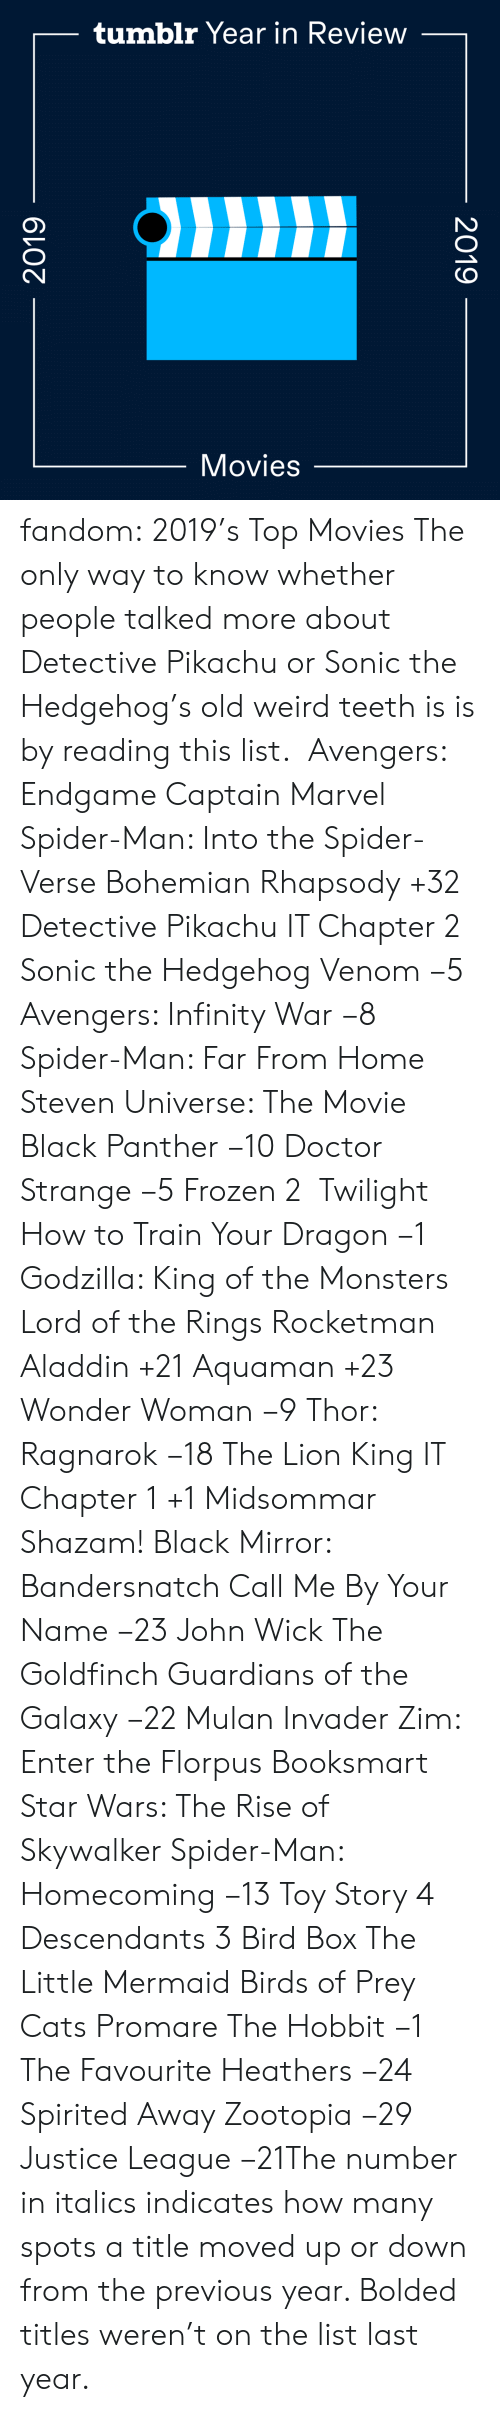 Hedgehog: tumblr Year in Review  Movies  2019  2019 fandom:  2019's Top Movies  The only way to know whether people talked more about Detective Pikachu or Sonic the Hedgehog's old weird teeth is is by reading this list.   Avengers: Endgame  Captain Marvel  Spider-Man: Into the Spider-Verse  Bohemian Rhapsody +32  Detective Pikachu  IT Chapter 2  Sonic the Hedgehog  Venom −5  Avengers: Infinity War −8  Spider-Man: Far From Home  Steven Universe: The Movie  Black Panther −10  Doctor Strange −5  Frozen 2   Twilight  How to Train Your Dragon −1  Godzilla: King of the Monsters  Lord of the Rings  Rocketman  Aladdin +21  Aquaman +23  Wonder Woman −9  Thor: Ragnarok −18  The Lion King  IT Chapter 1 +1  Midsommar  Shazam!  Black Mirror: Bandersnatch  Call Me By Your Name −23  John Wick  The Goldfinch  Guardians of the Galaxy −22  Mulan  Invader Zim: Enter the Florpus  Booksmart  Star Wars: The Rise of Skywalker  Spider-Man: Homecoming −13  Toy Story 4  Descendants 3  Bird Box  The Little Mermaid  Birds of Prey  Cats  Promare  The Hobbit −1  The Favourite  Heathers −24  Spirited Away  Zootopia −29 Justice League −21The number in italics indicates how many spots a title moved up or down from the previous year. Bolded titles weren't on the list last year.